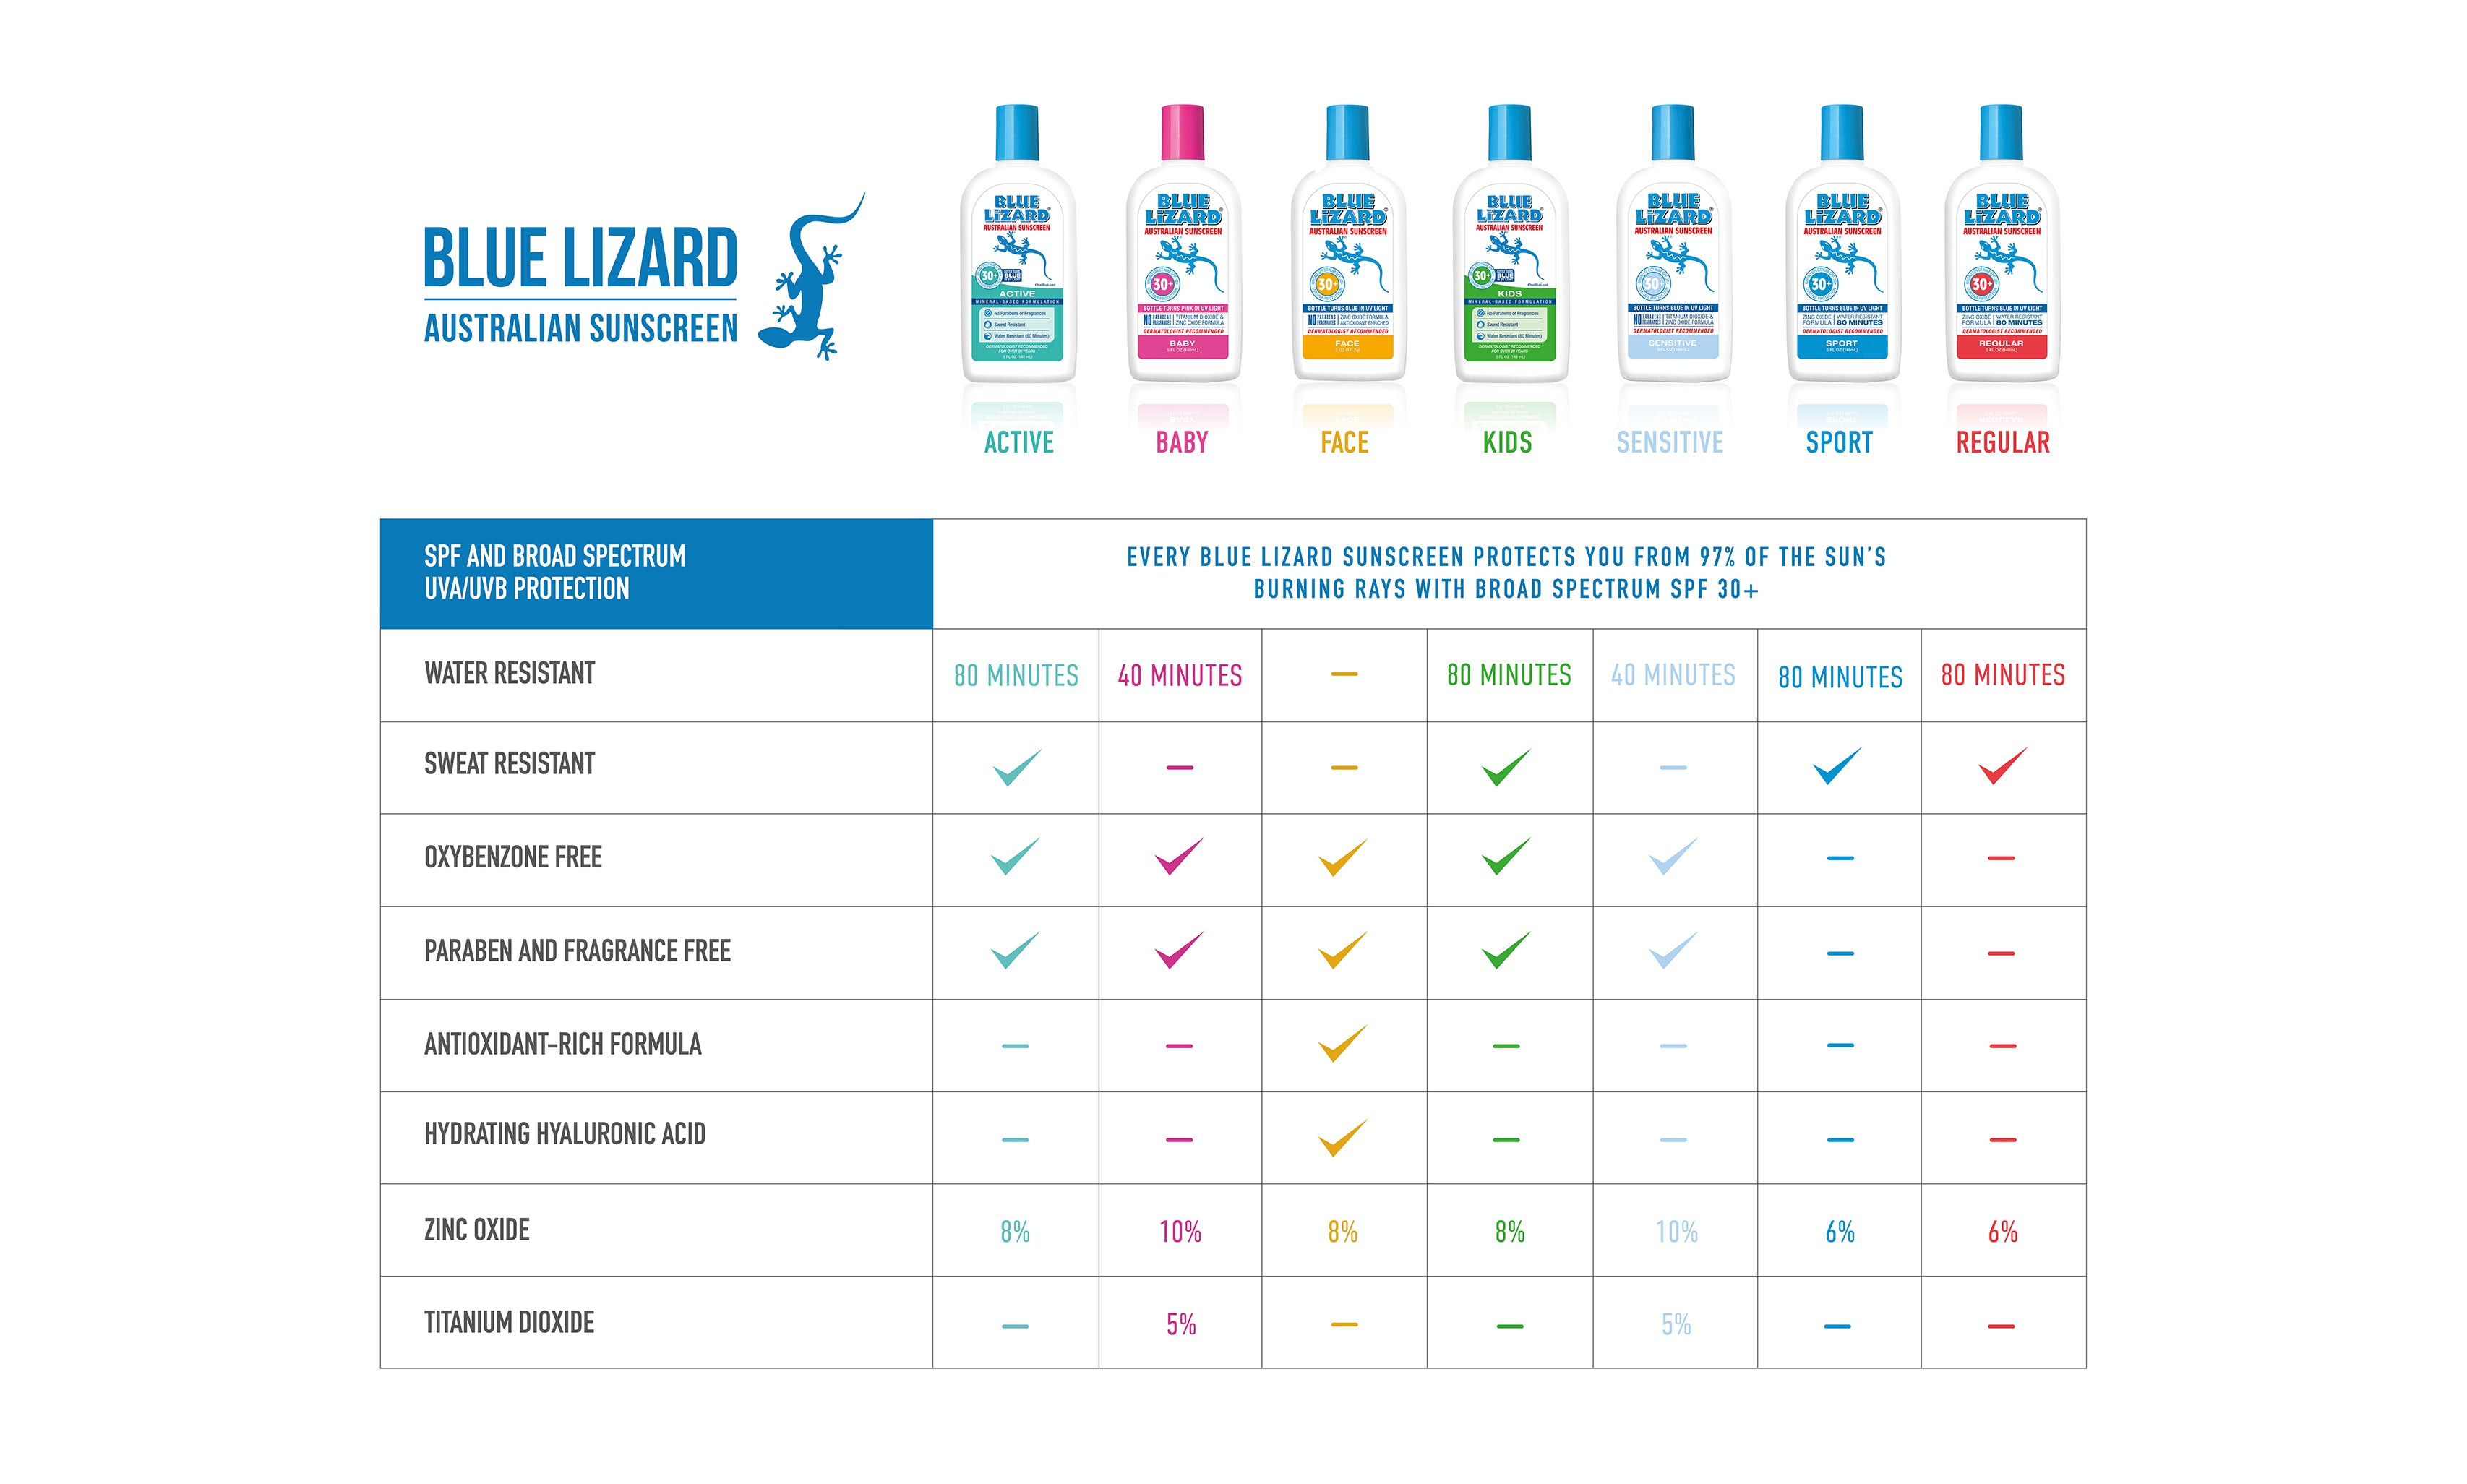 Blue Lizard 2018 Product Line-up Comparison Chart